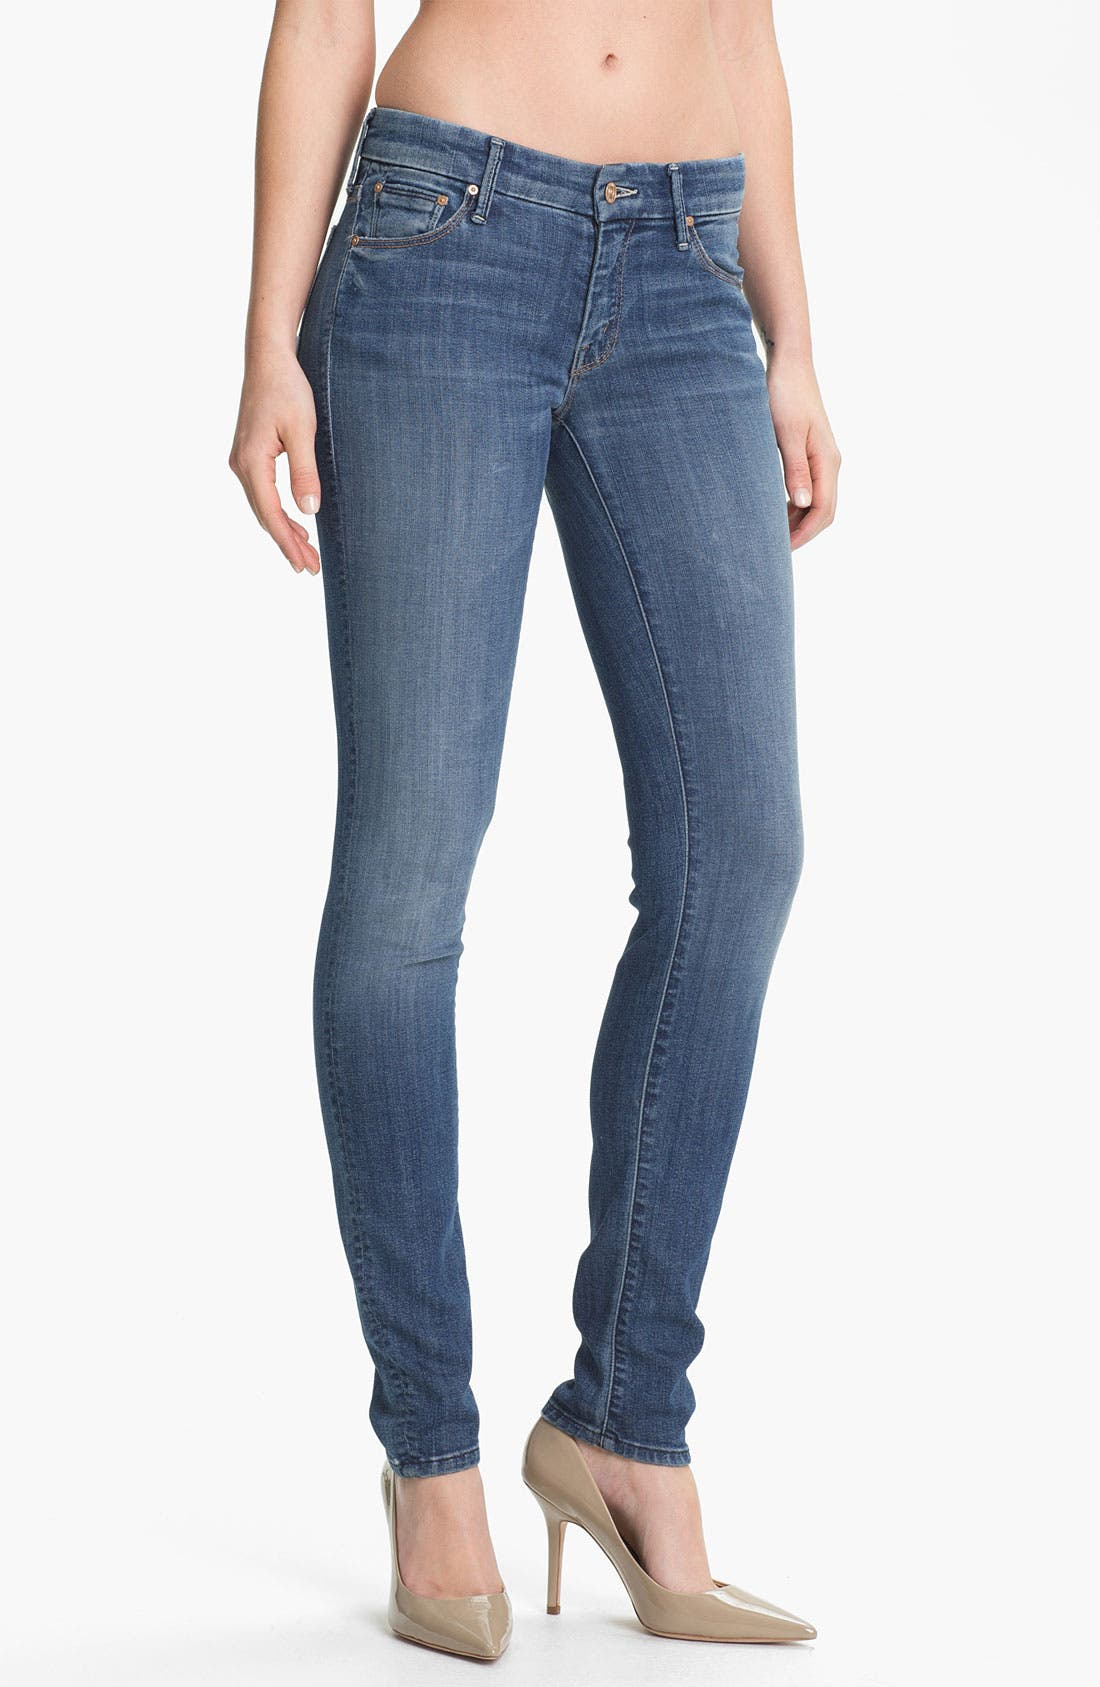 Alternate Image 1 Selected - MOTHER 'The Looker' Skinny Stretch Jeans (Medium Kitty)